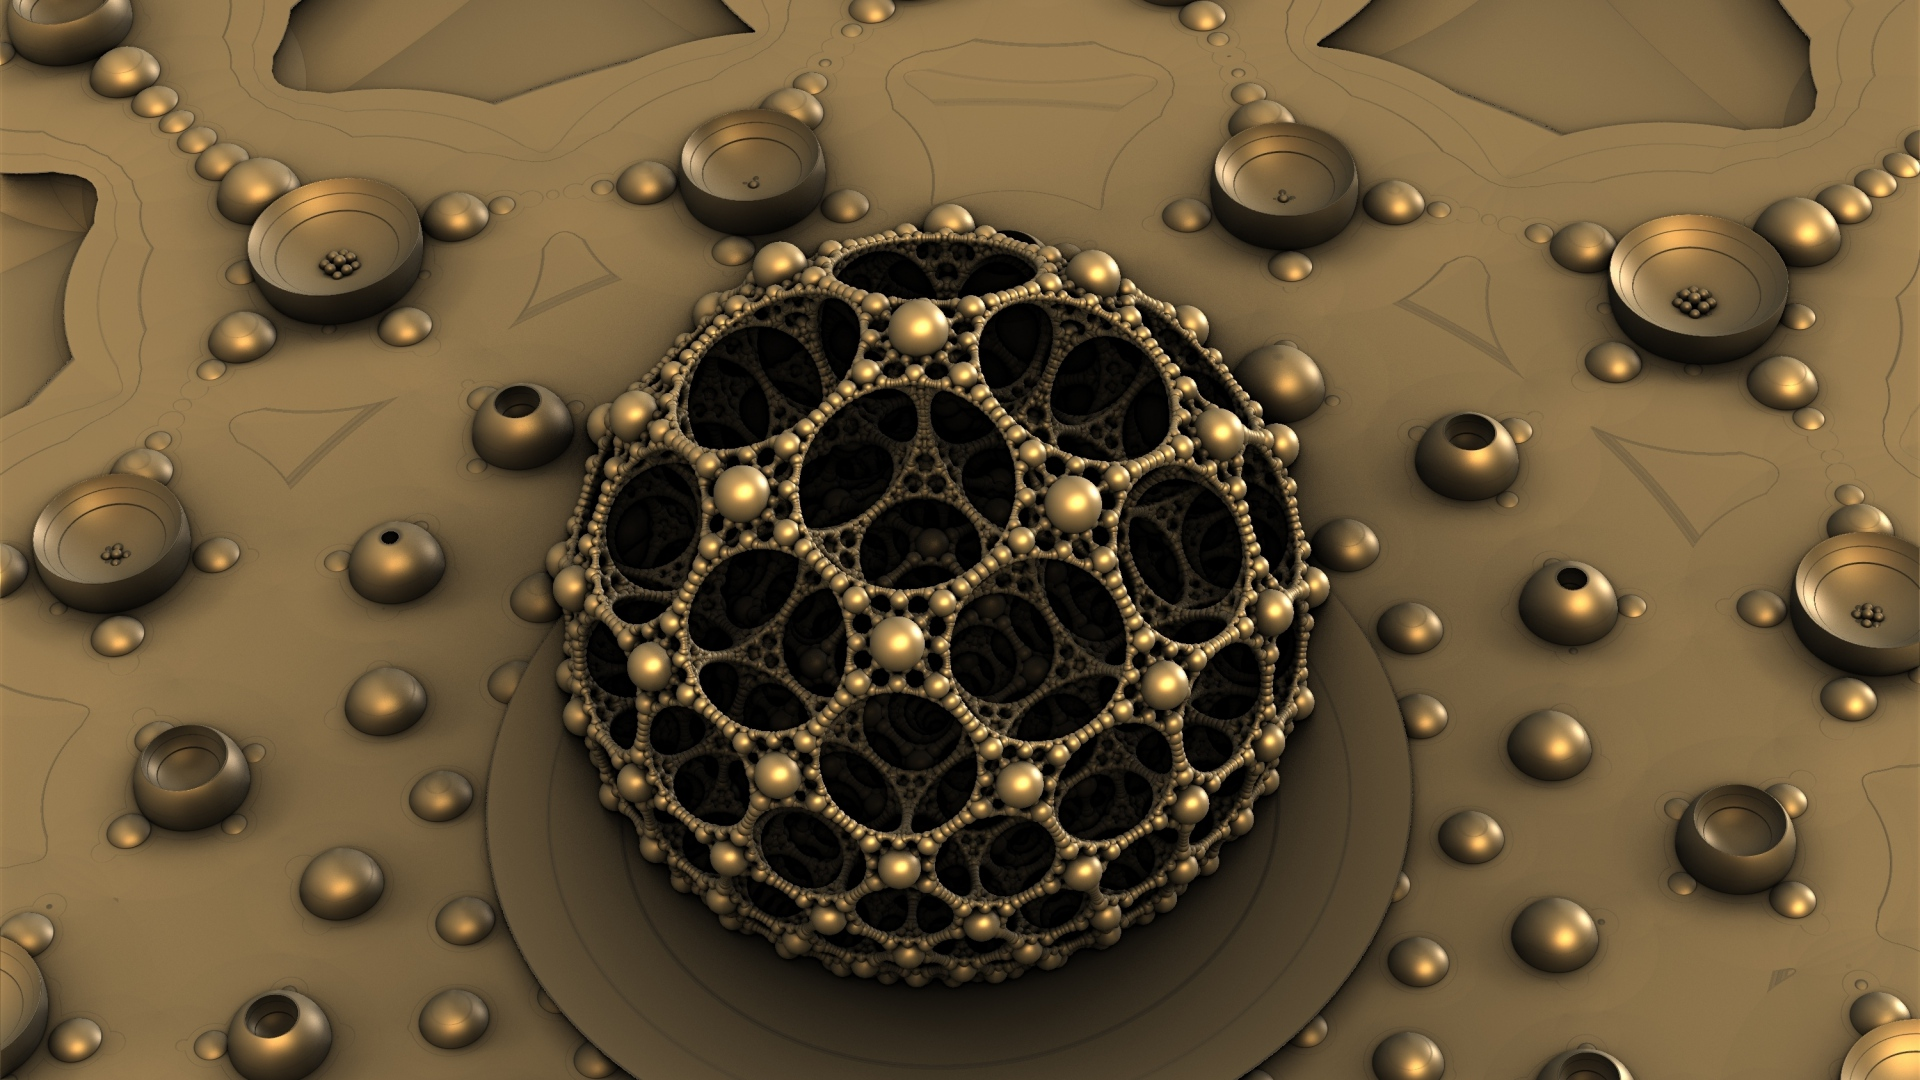 Earnings Disclaimer >> Download Wallpaper 1920x1080 balls, fractal, shape Full HD 1080p HD Background